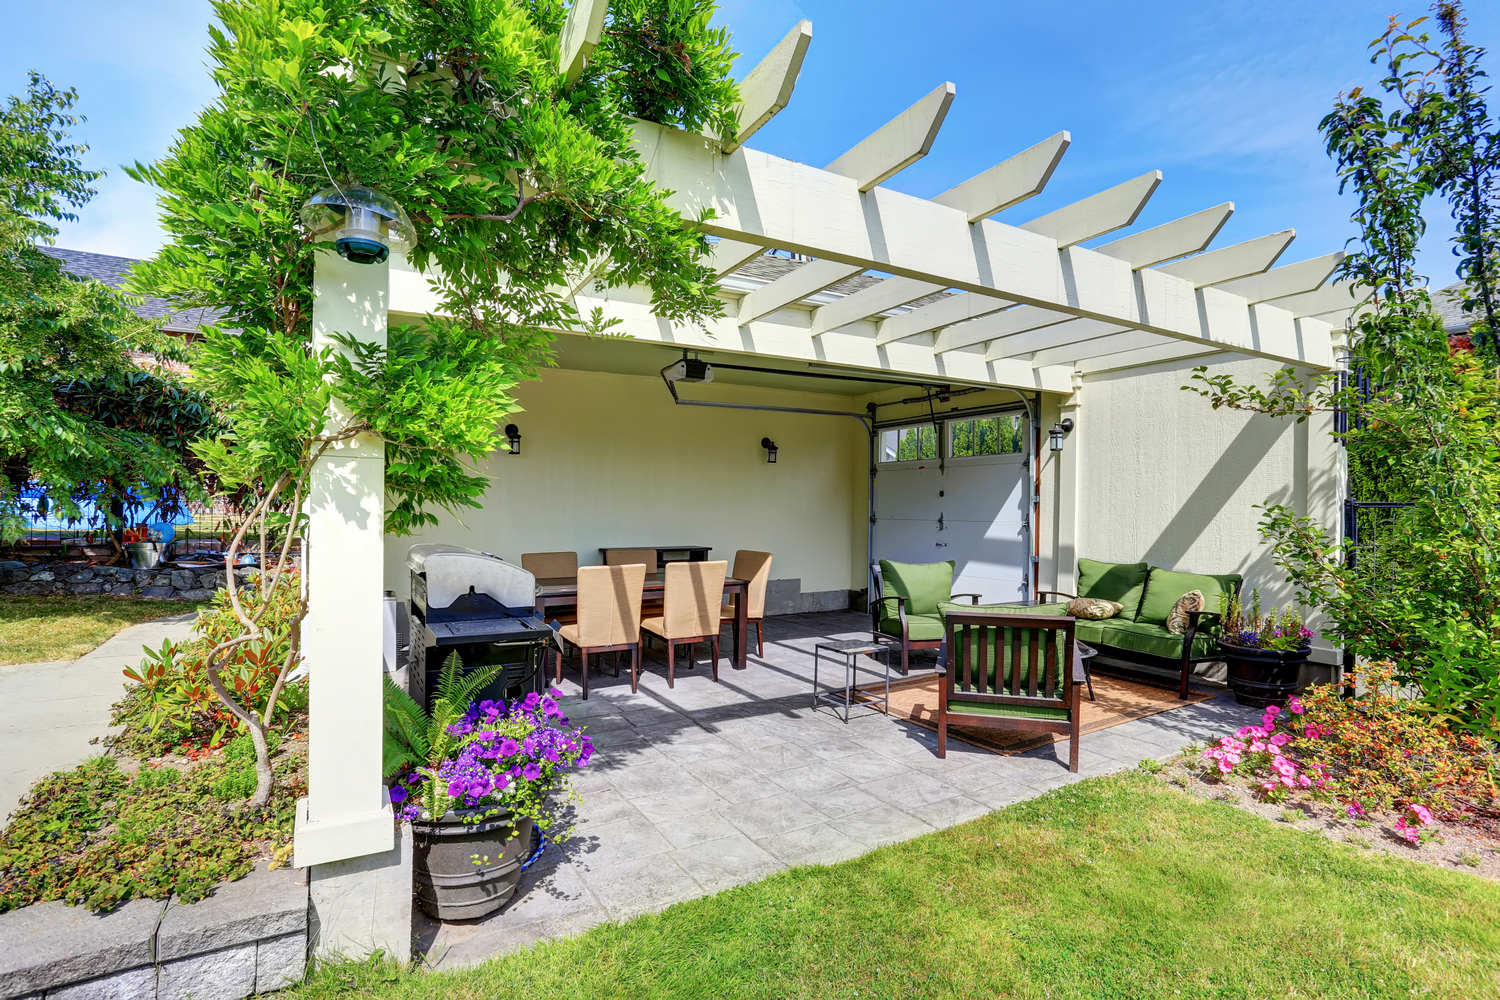 Covered,Patio,Area,With,Outside,Chairs,In,The,Backyard,Garden.